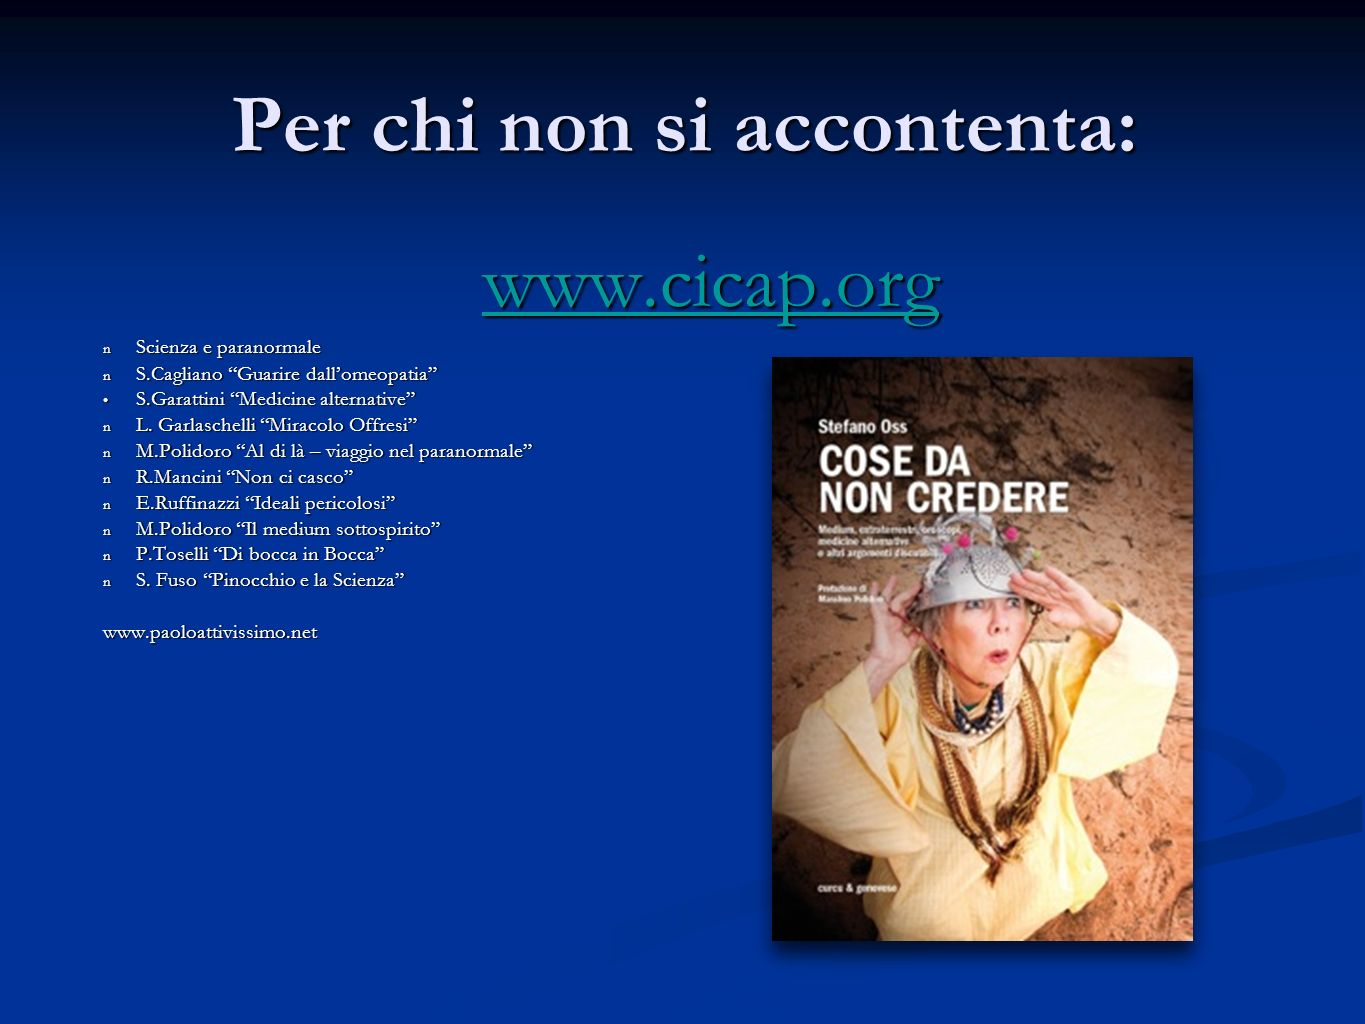 Per chi non si accontenta: www.cicap.org n Scienza e paranormale n S.Cagliano Guarire dallomeopatia S.Garattini Medicine alternative S.Garattini Medicine alternative n L.